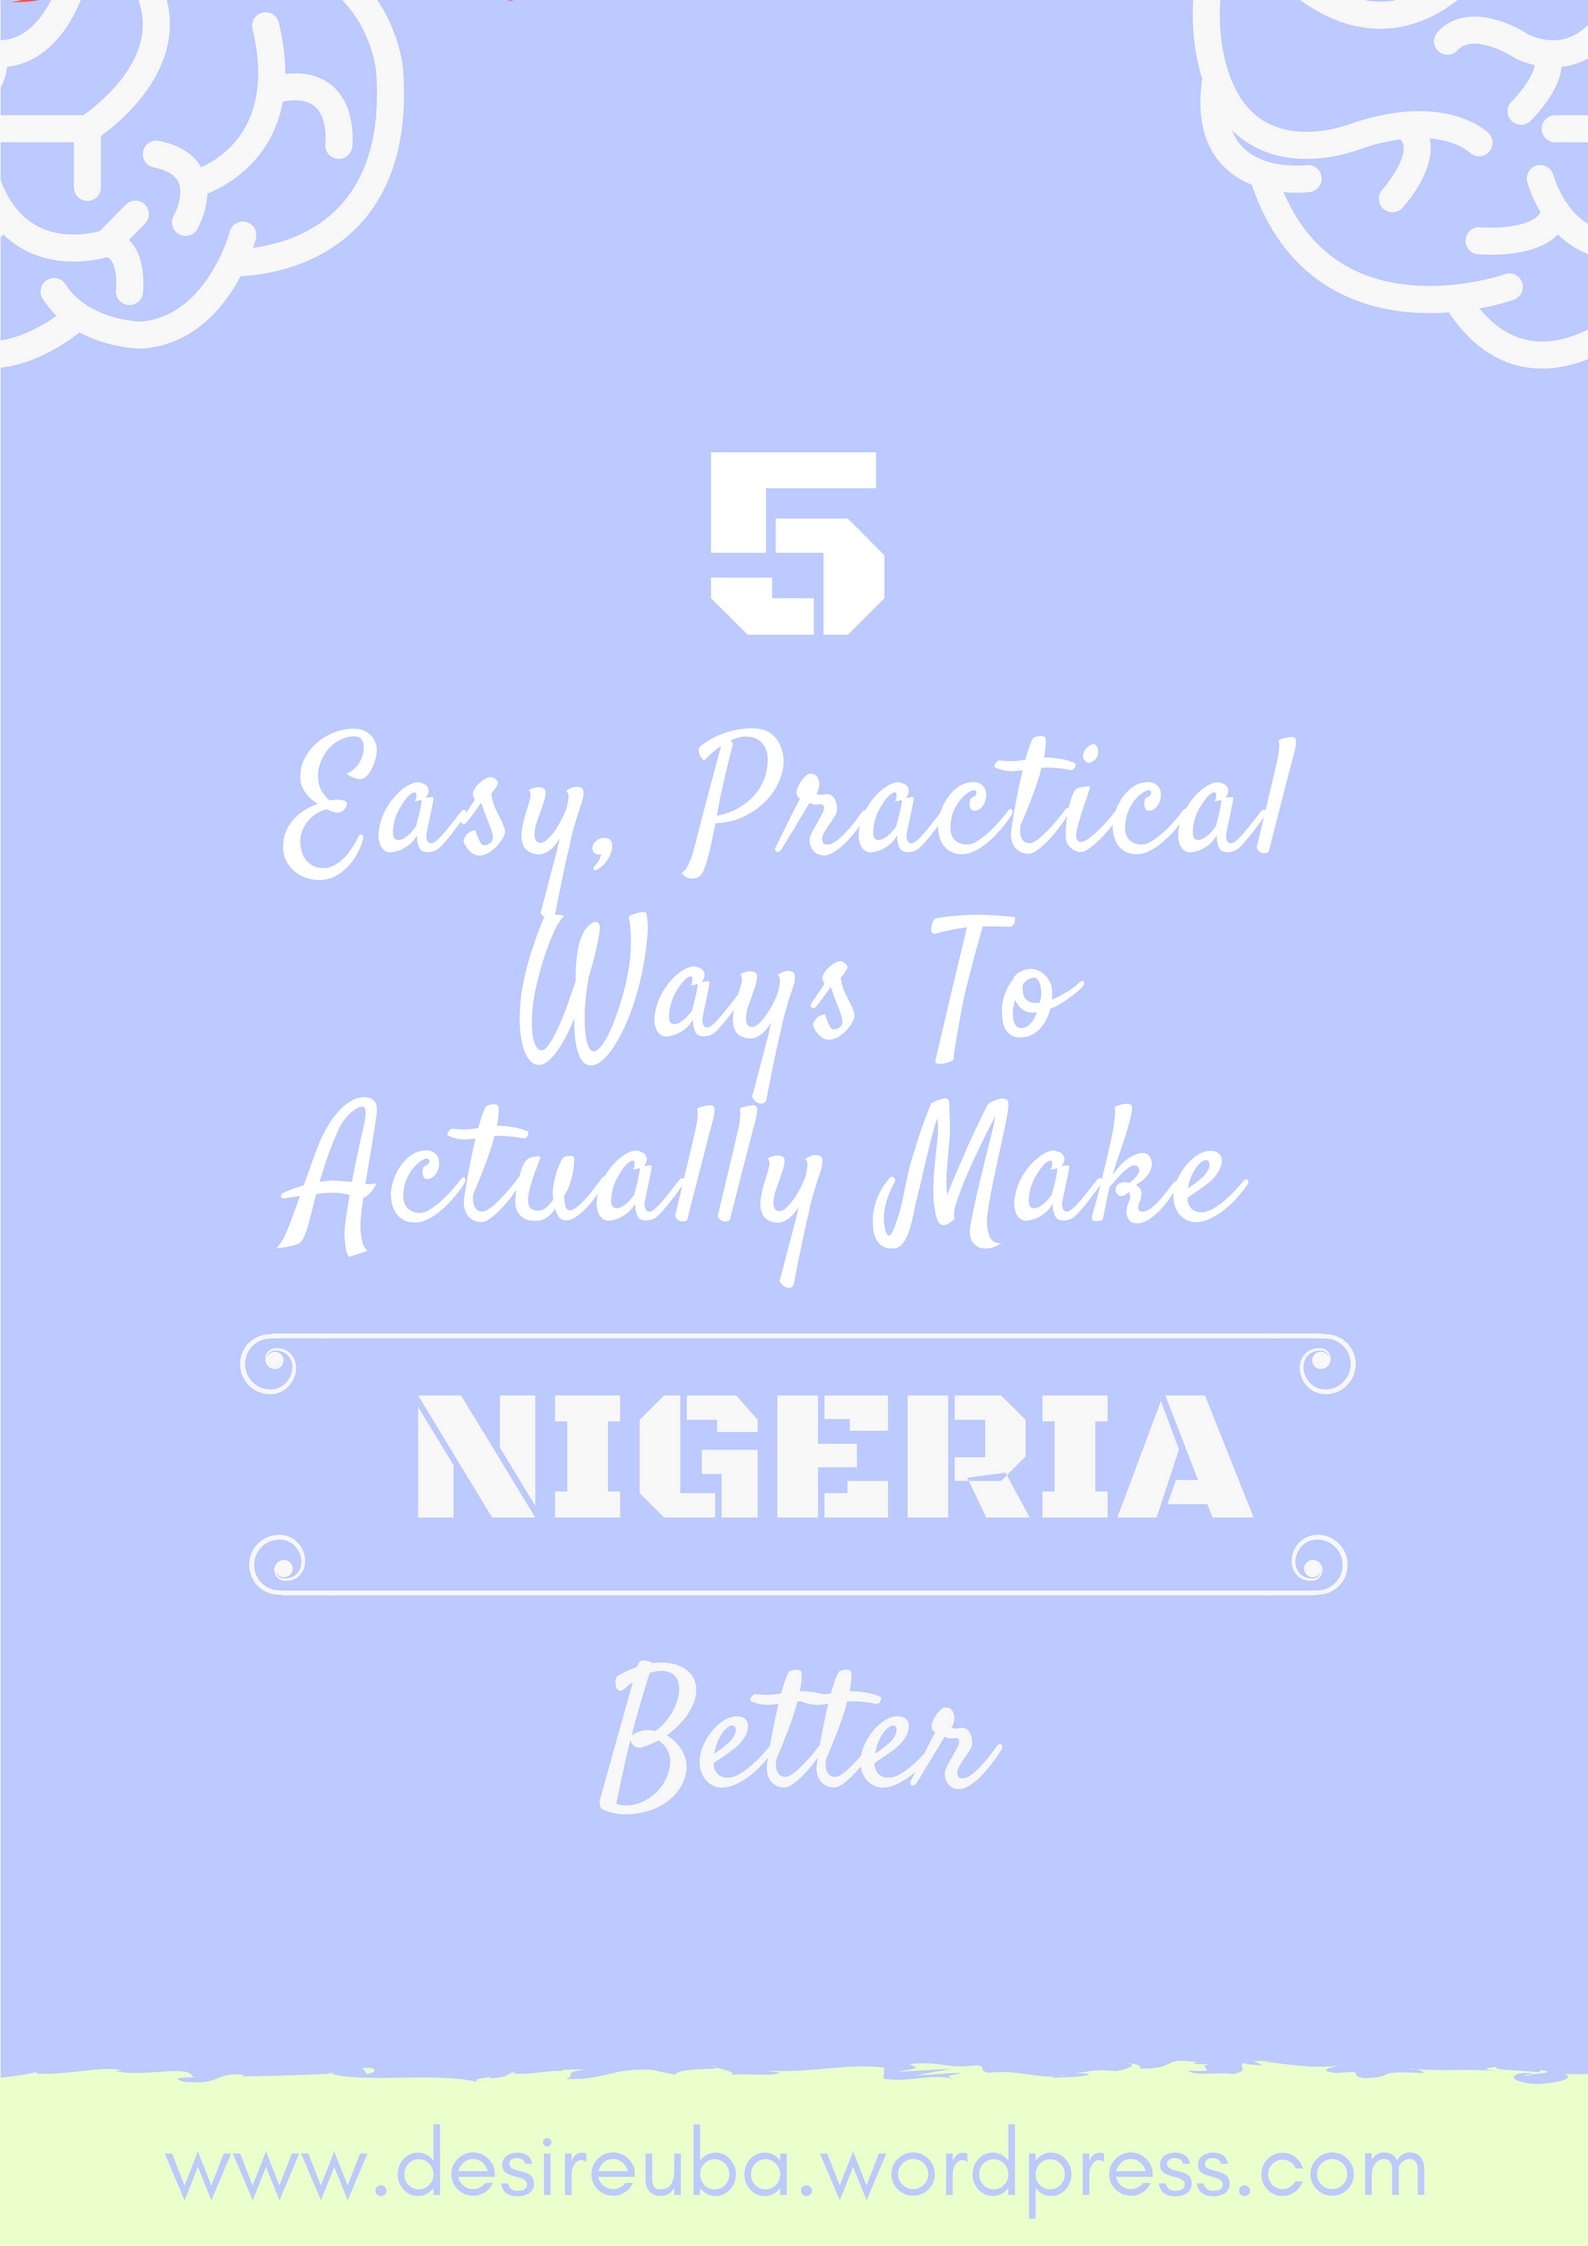 5 EASY, PRACTICAL WAYS TO ACTUALLY MAKE NIGERIA BETTER